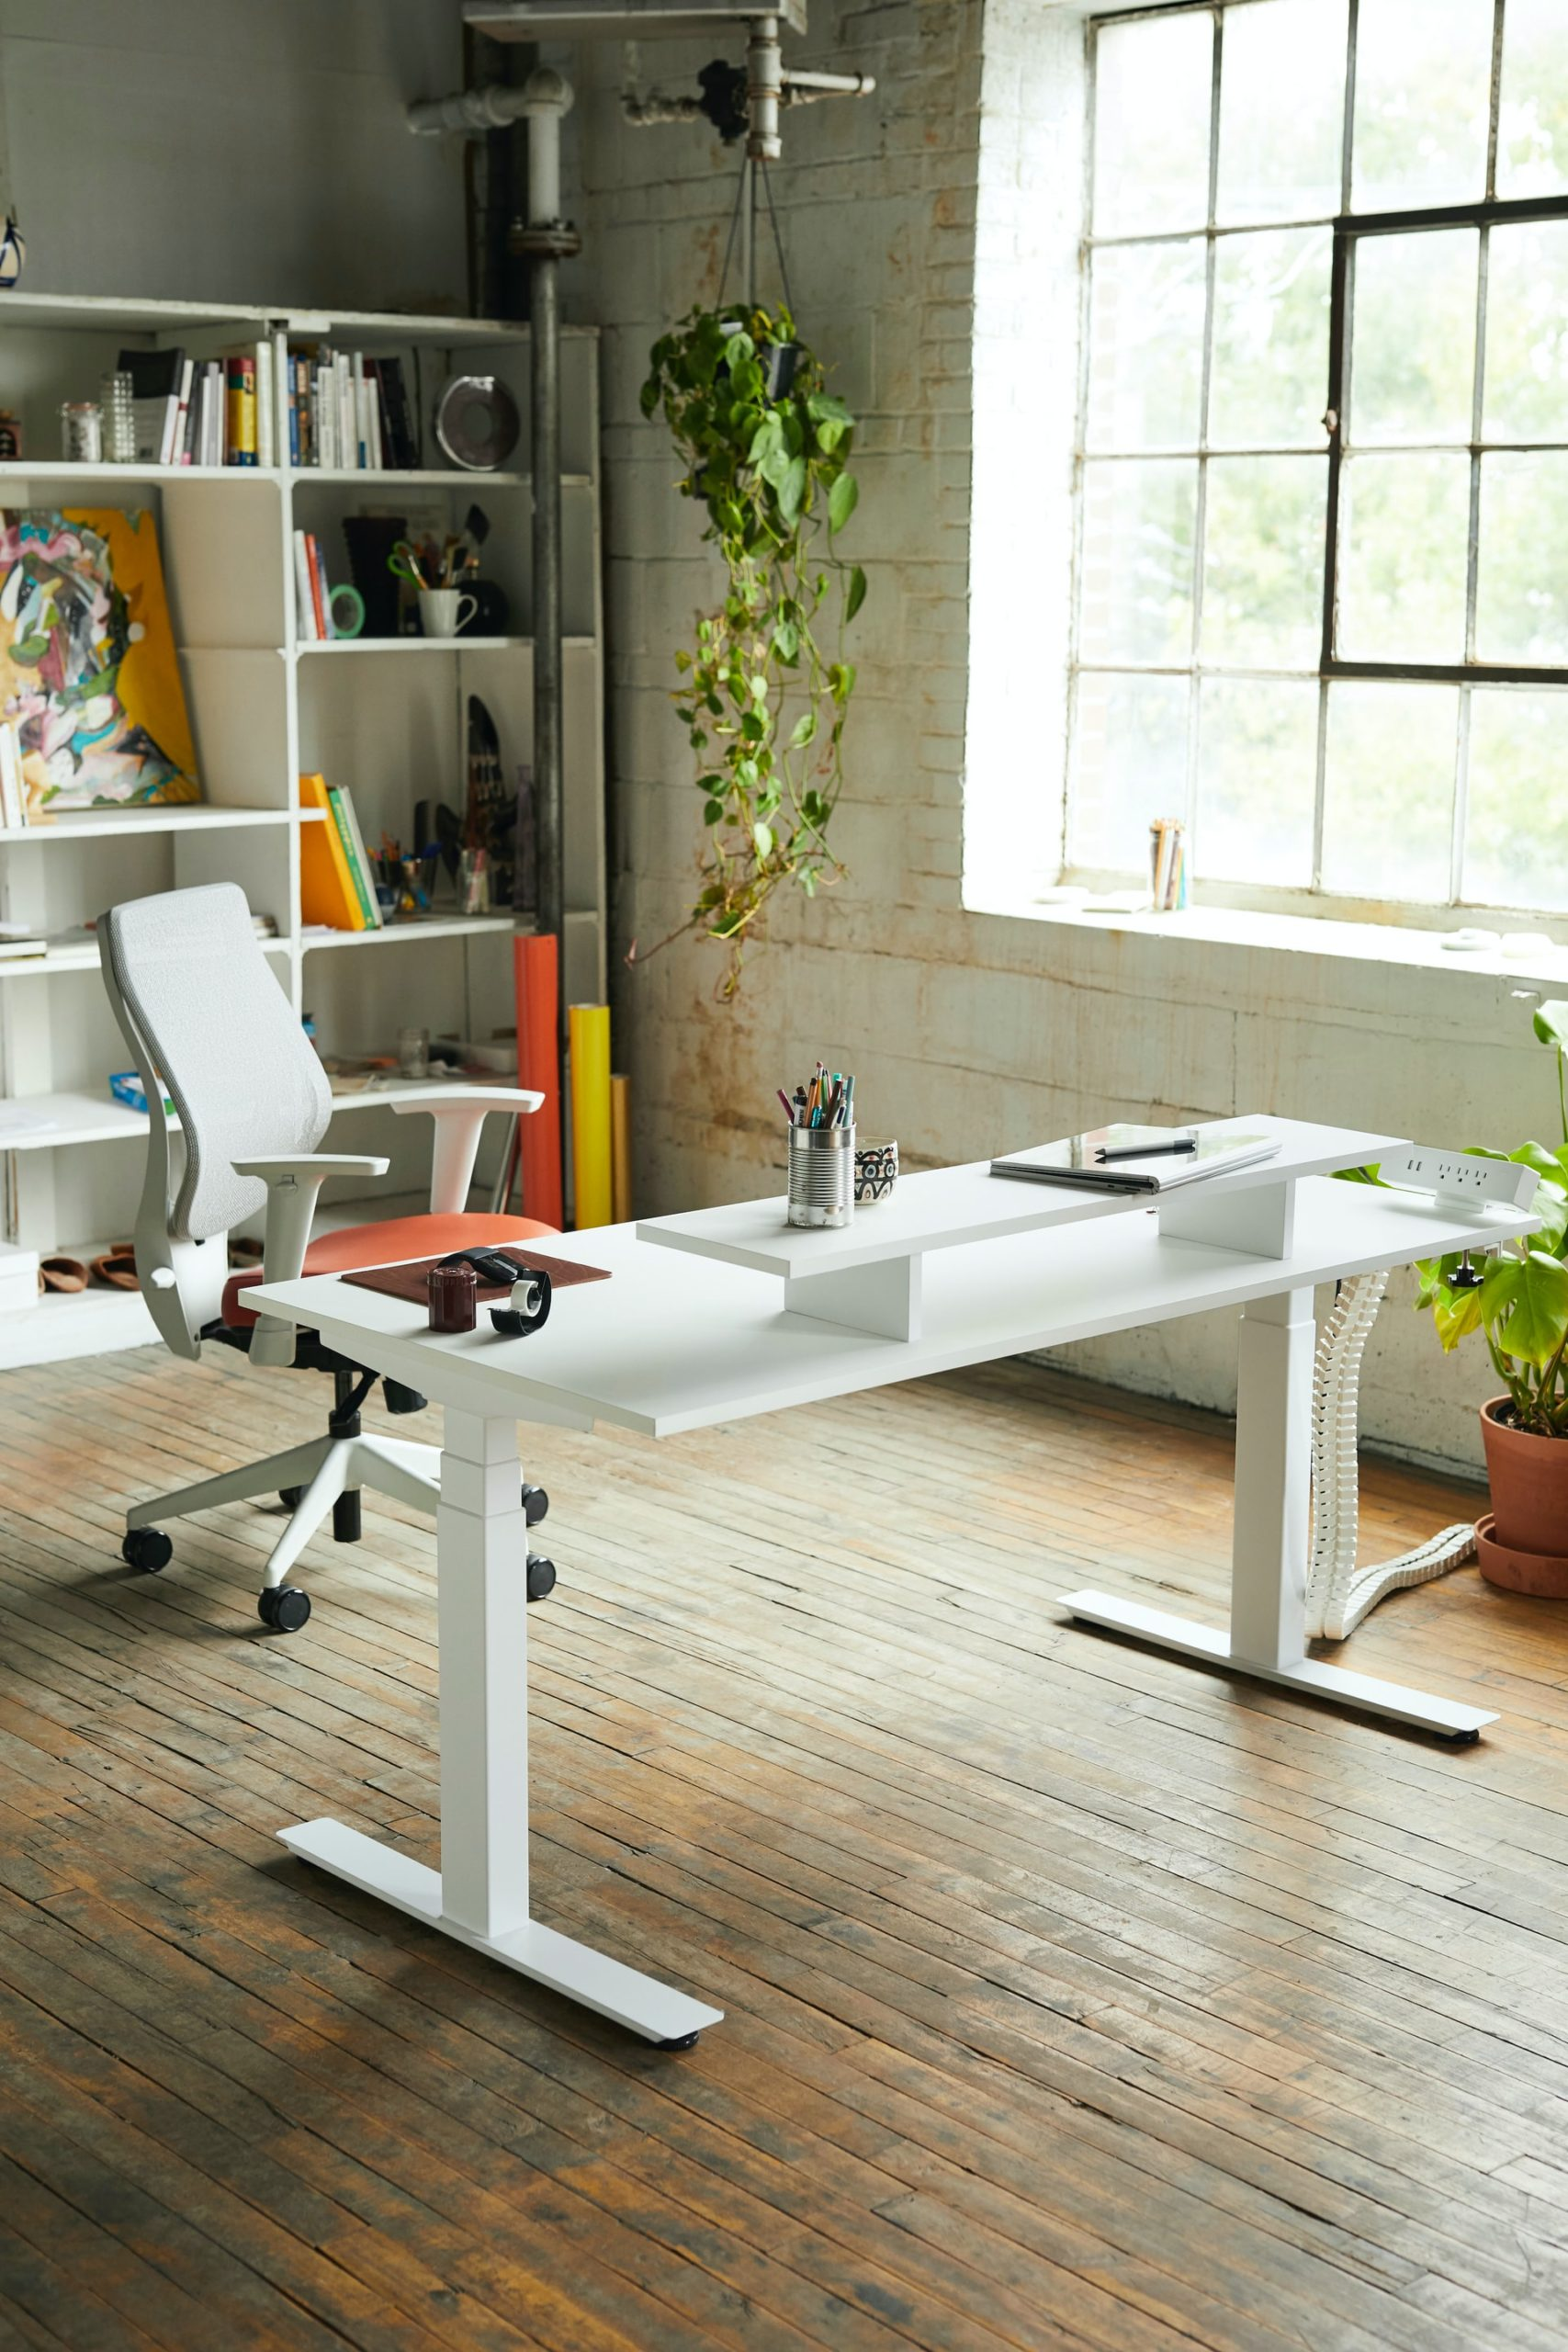 Business Office Space Management Article Image